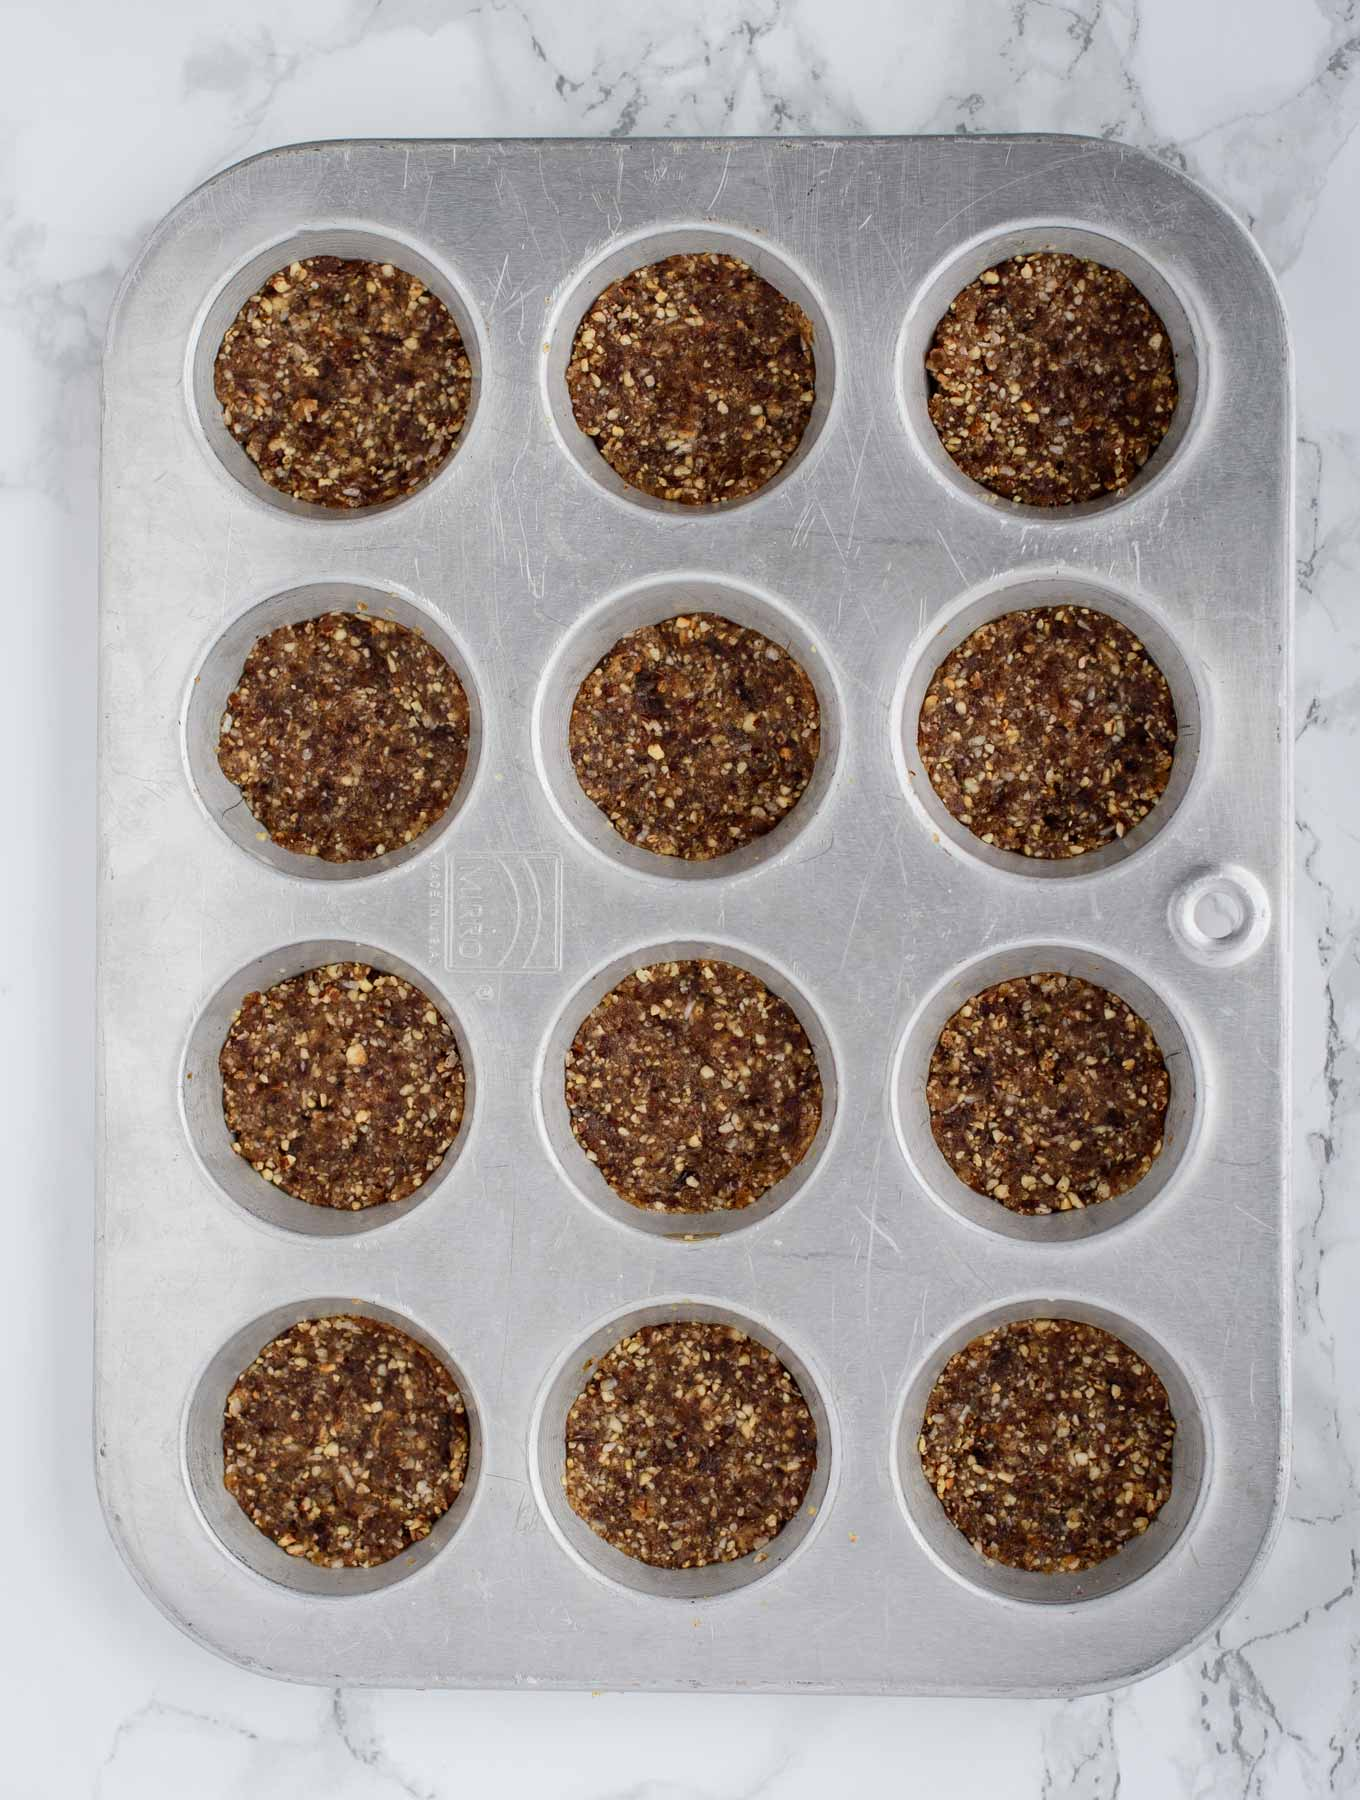 Candied ginger crust in muffin tin